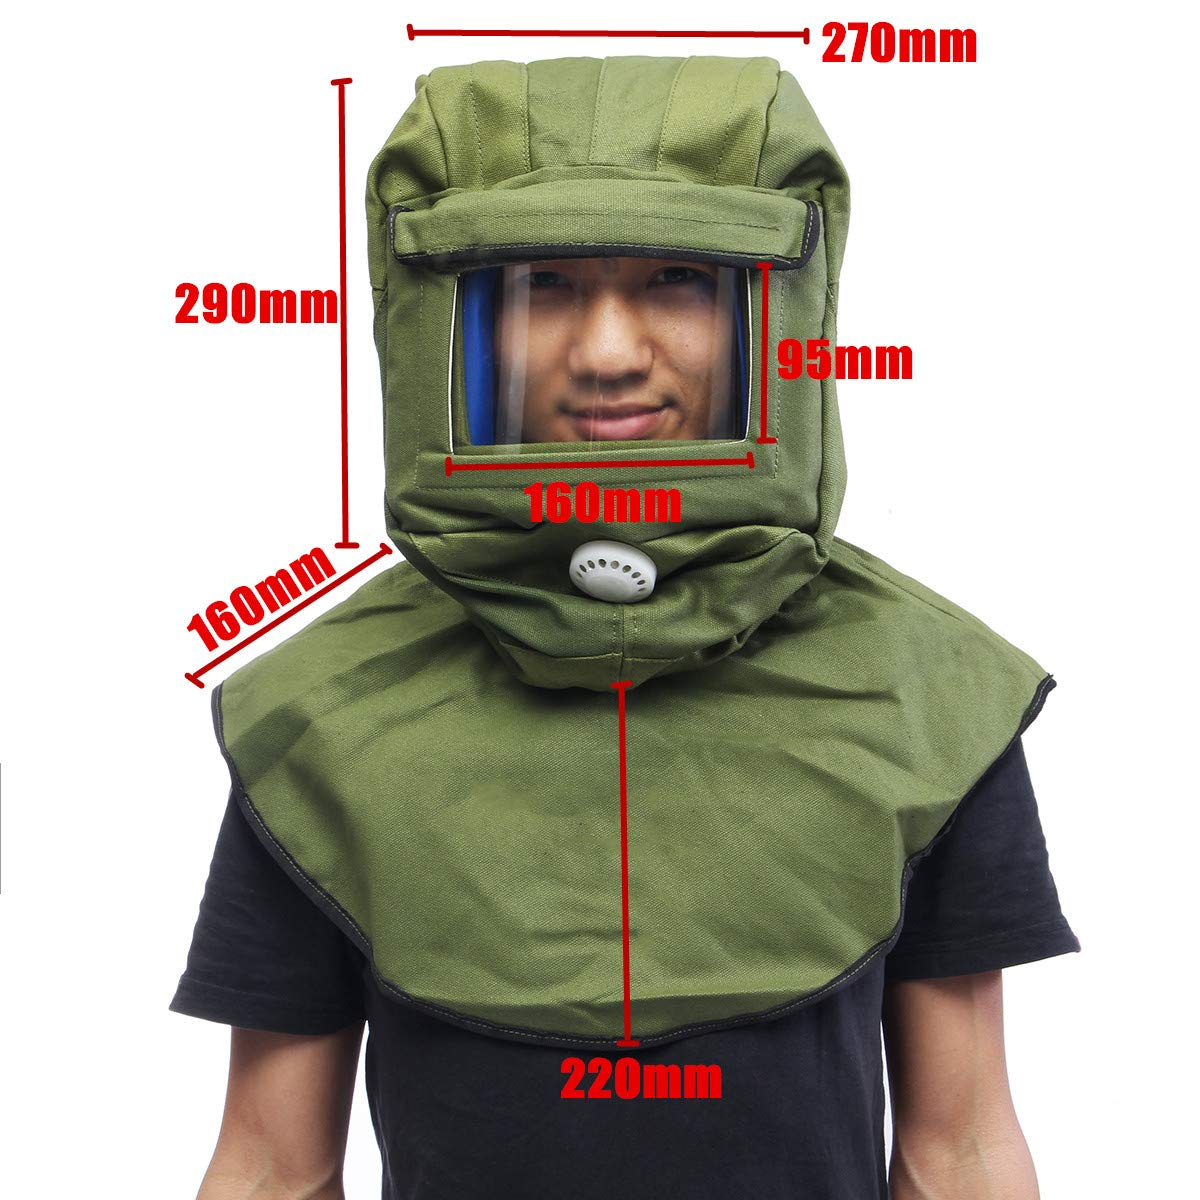 Canvas Sand Blasting Hood Cap Face Mask Anti-dust Equipment - Breathable Light Weight Comfortable 29x27x22cm (Green) by dDanke